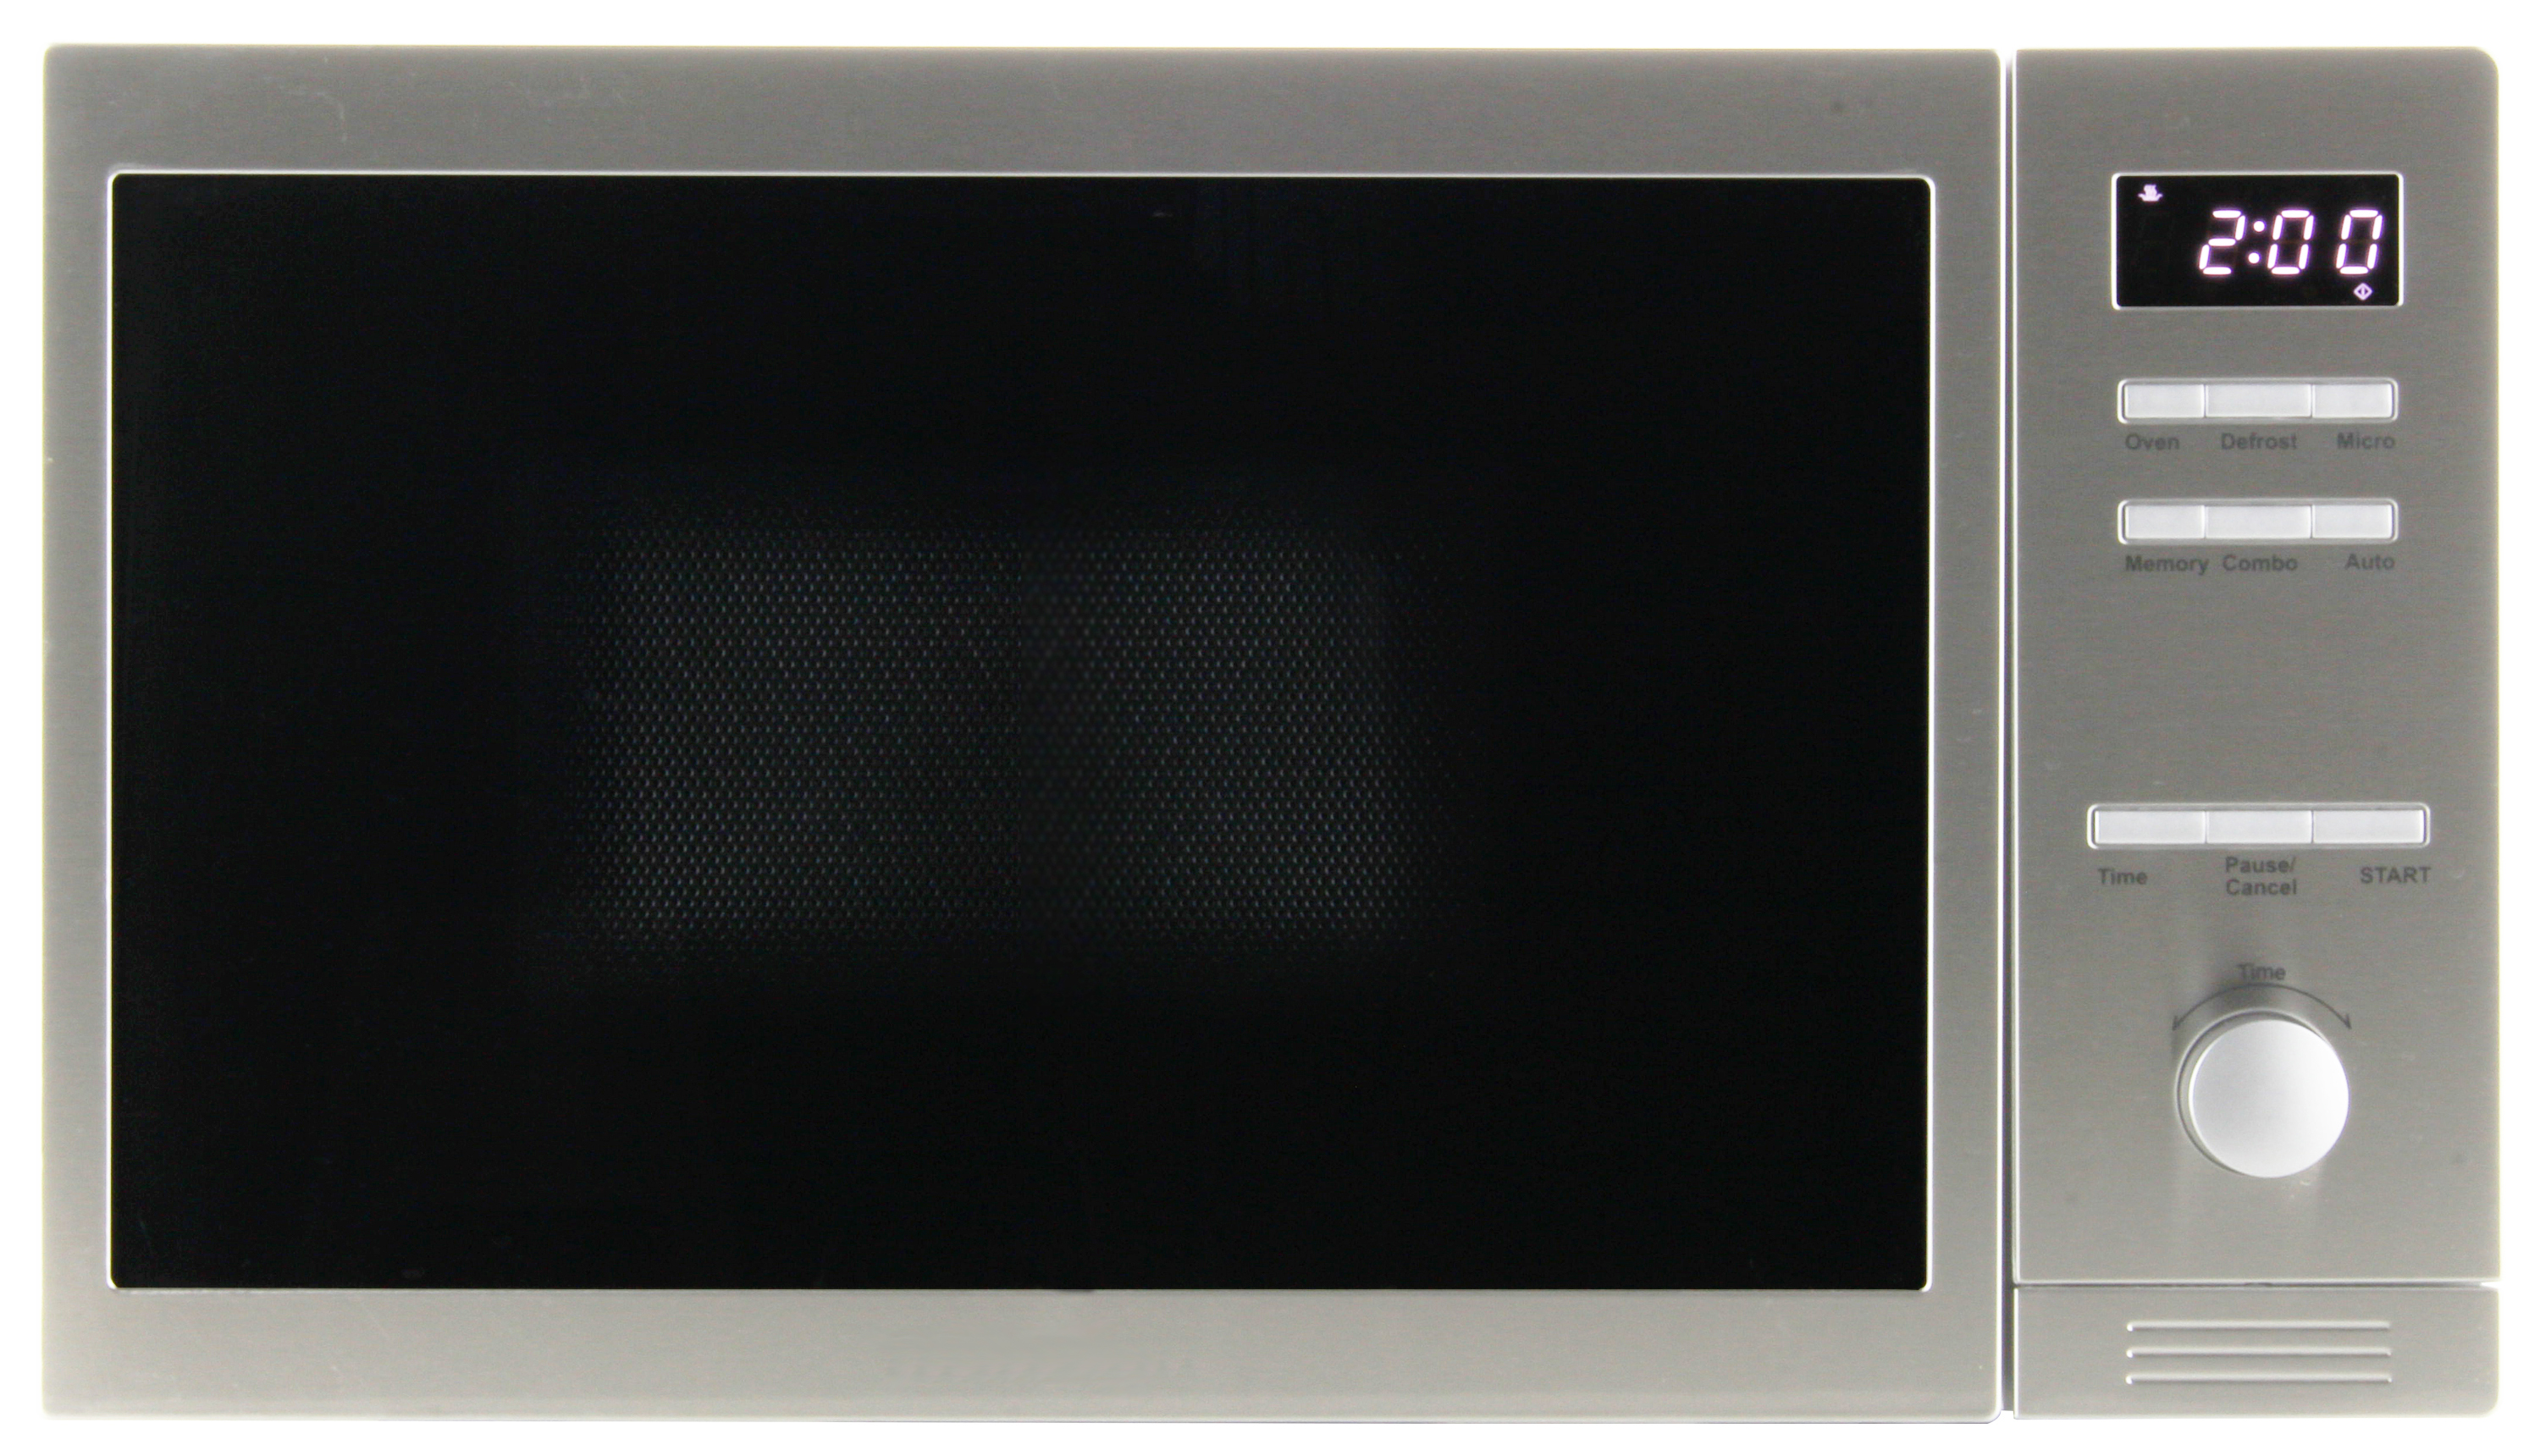 Deco 0.8 cu.ft. Free Standing Microwave; Stainless